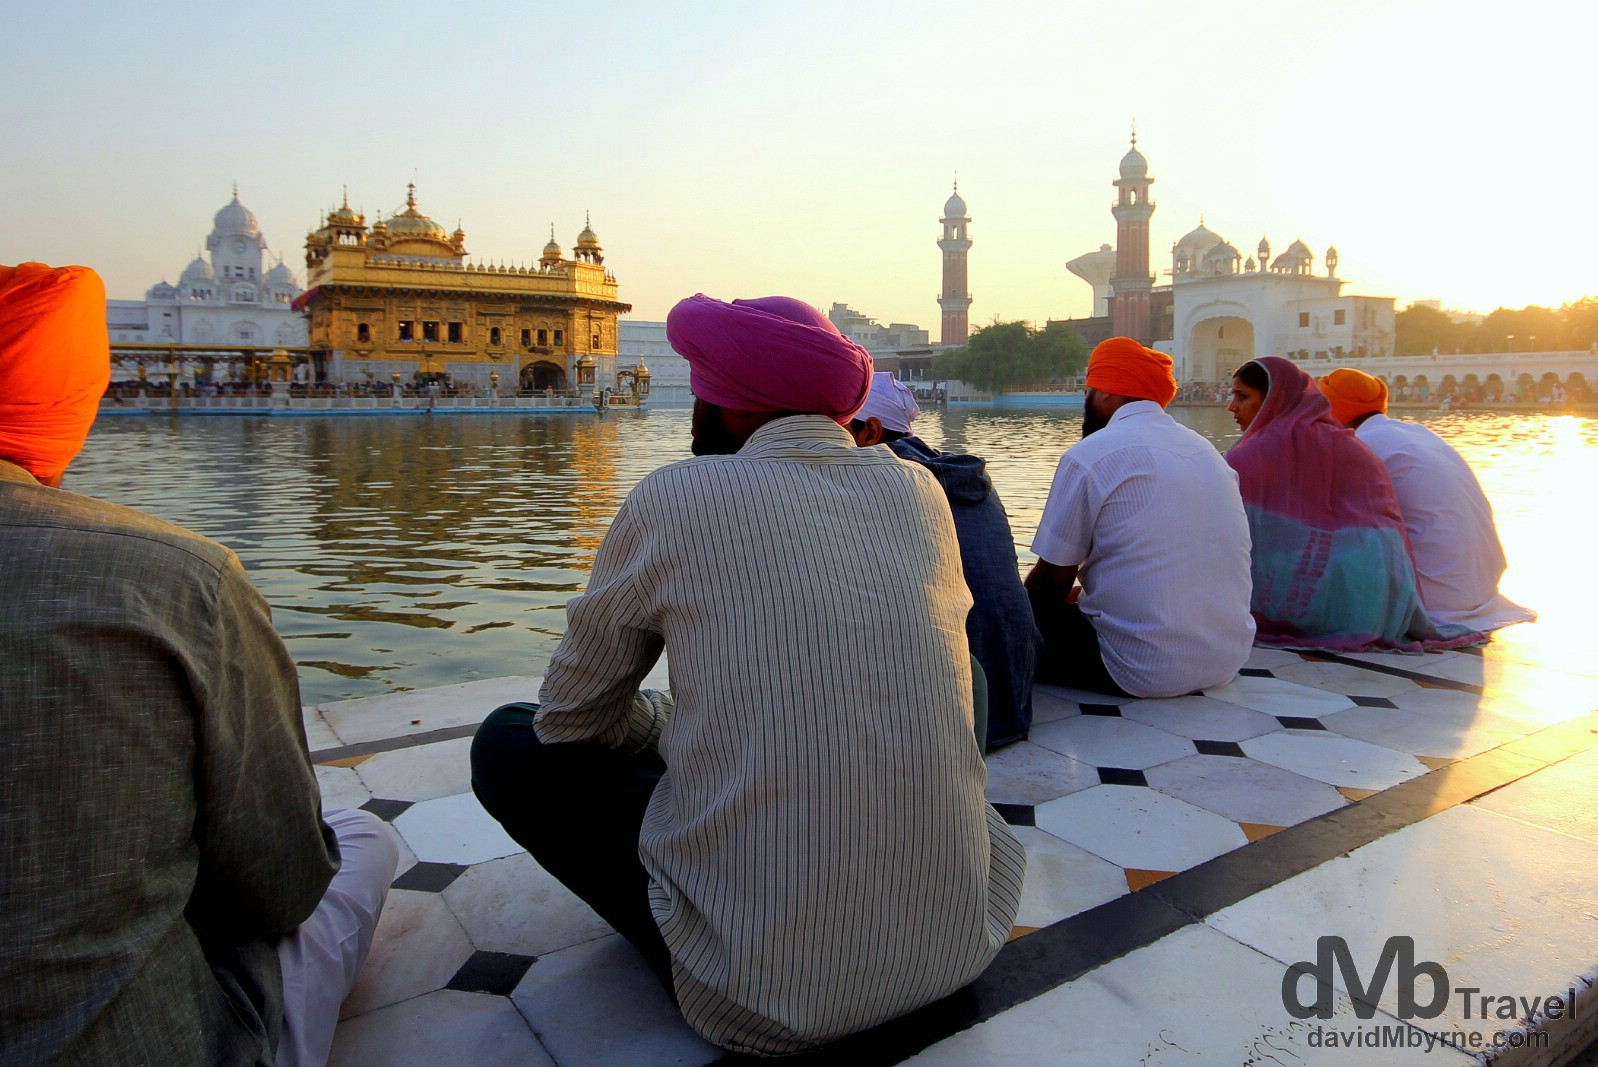 Sitting by the Amrit Sarovar (Pool of Nectar) at sunrise at the Golden Temple, Amritsar, India. October 9th 2012.